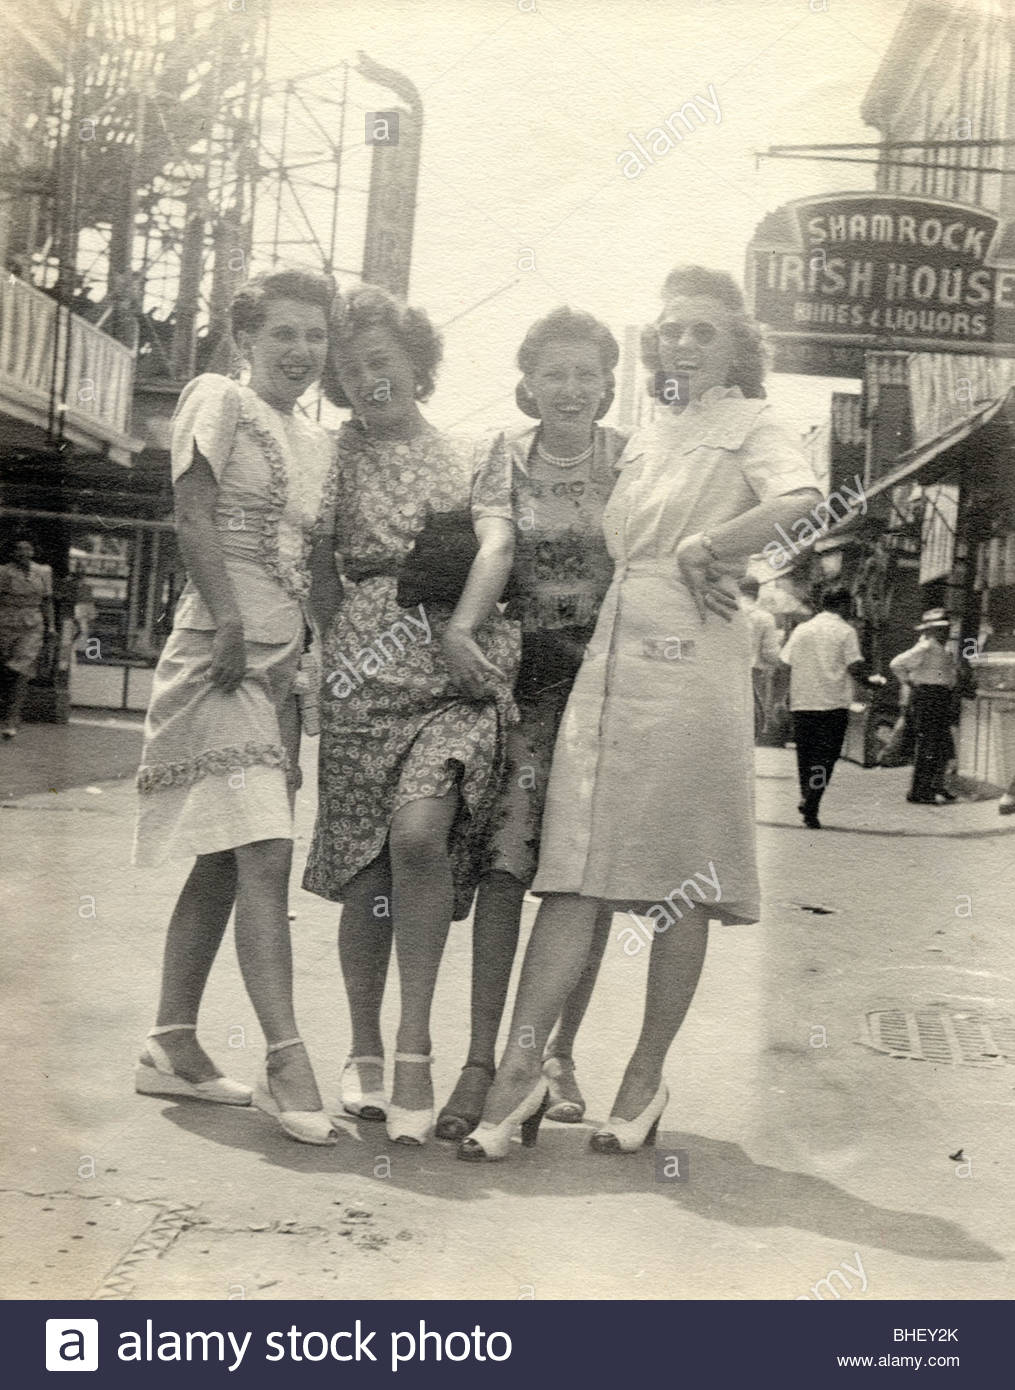 girls on the town showing of there legs - Stock Image